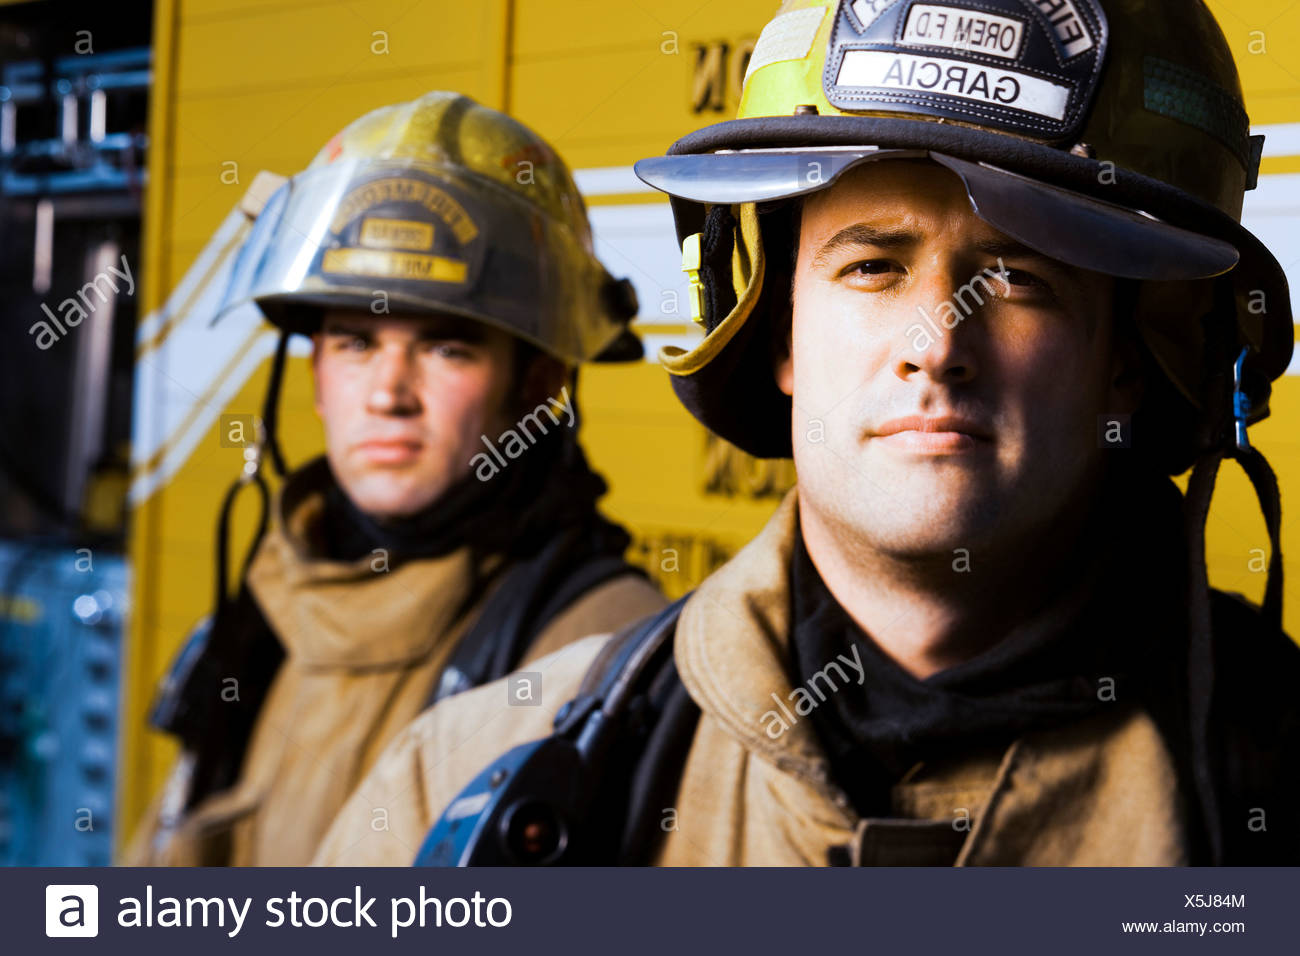 Portrait of firefighters - Stock Image